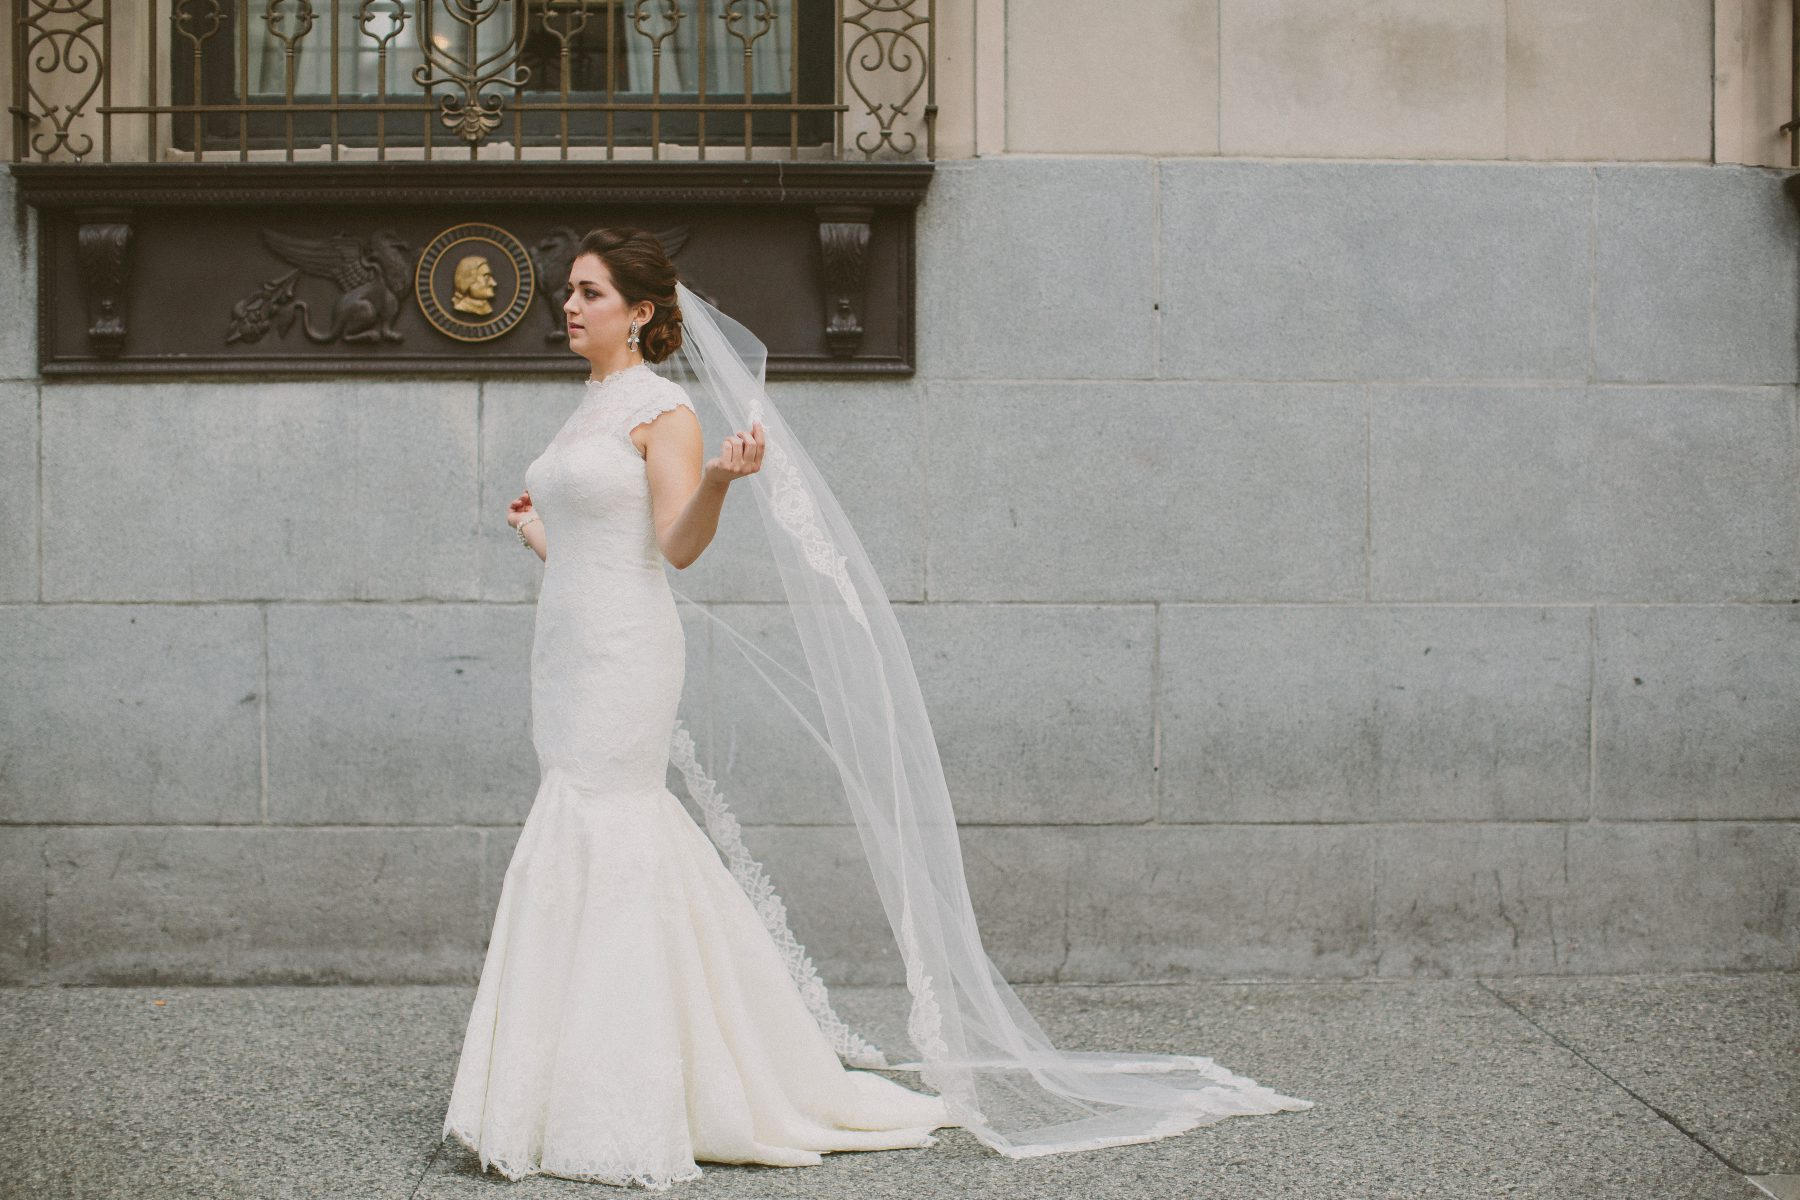 Simple Wedding Dresses Understated Bridal Gown Lwd With: Chic Understated Wedding At The Carnegie Music Hall: Nina